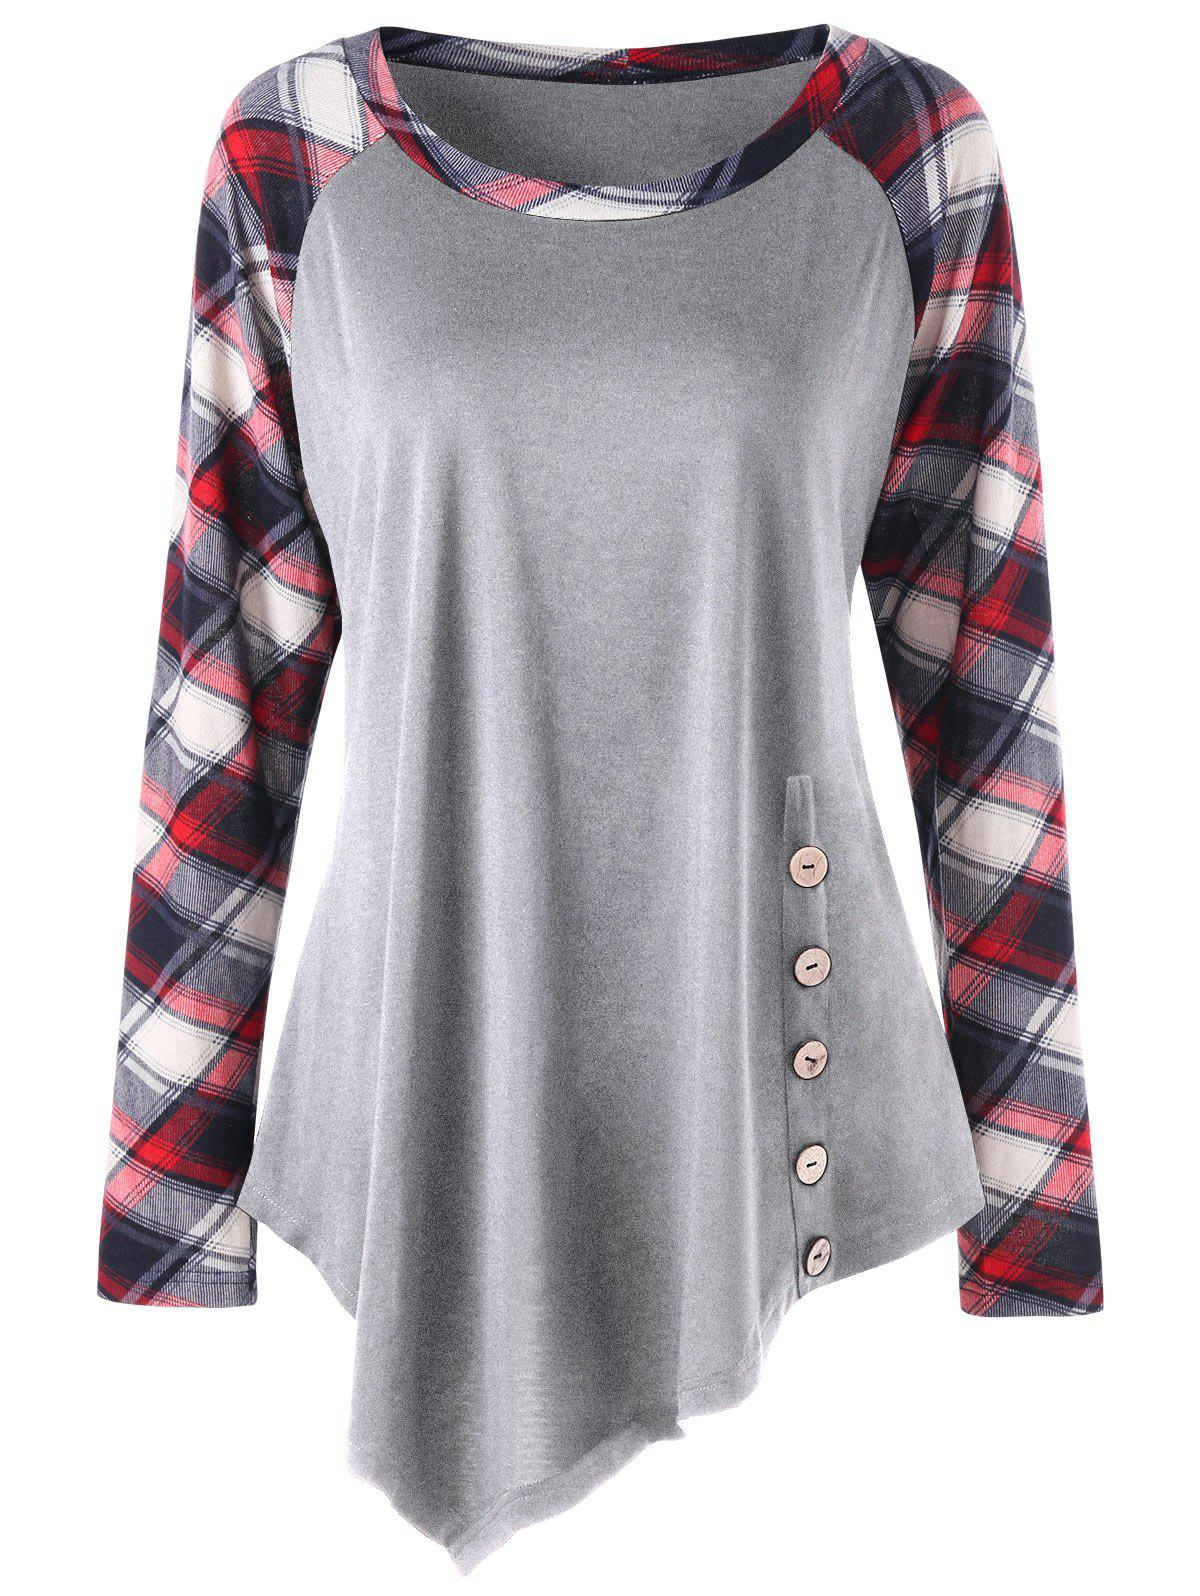 Plus Size Plaid Panel Raglan Sleeve Asymmetric Top юбка ice iceberg бежевый